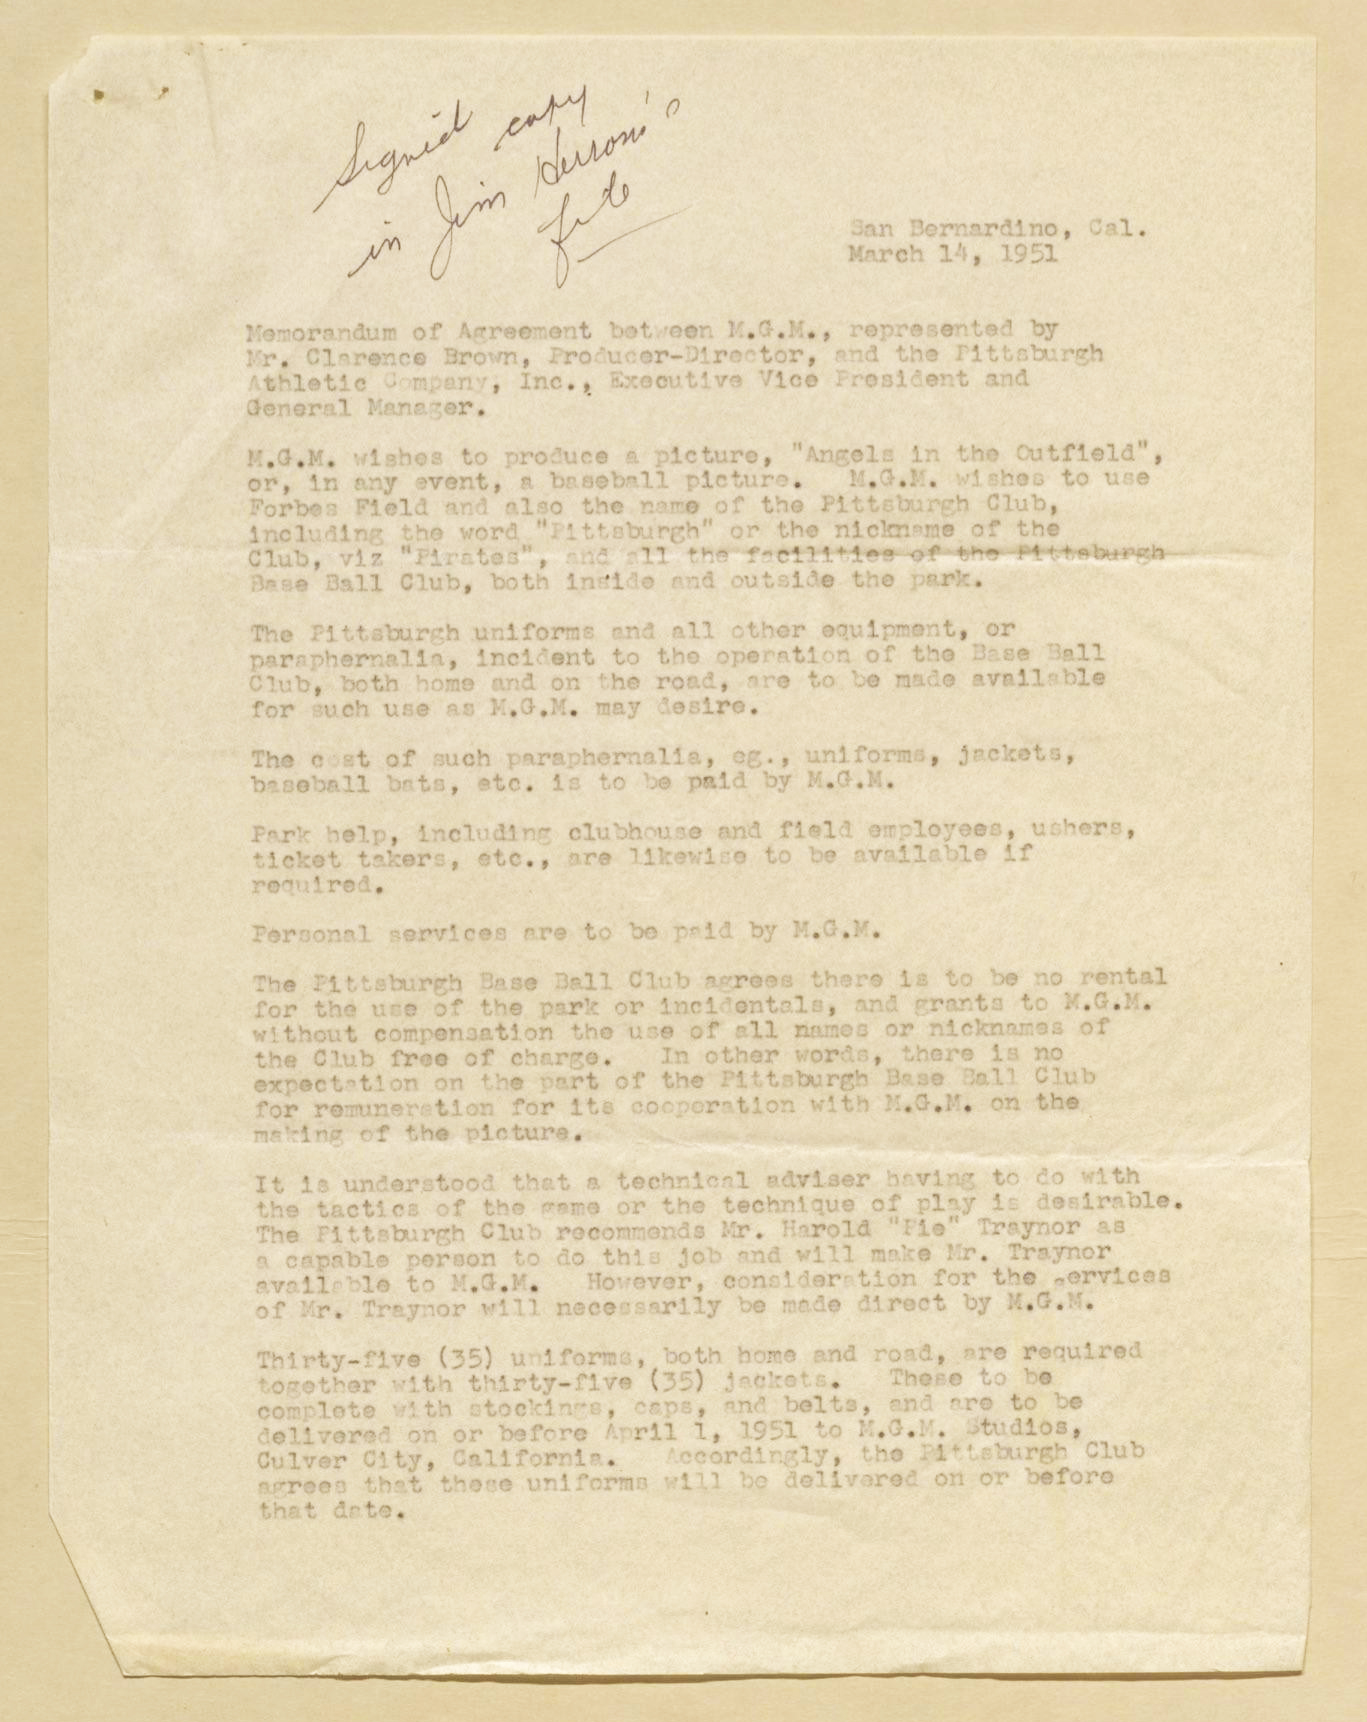 Academic interns constellationspitt a memorandum of agreement between mgm and the pittsburgh pirates found in the branch rickey papers at the library of congress manuscript division thecheapjerseys Gallery